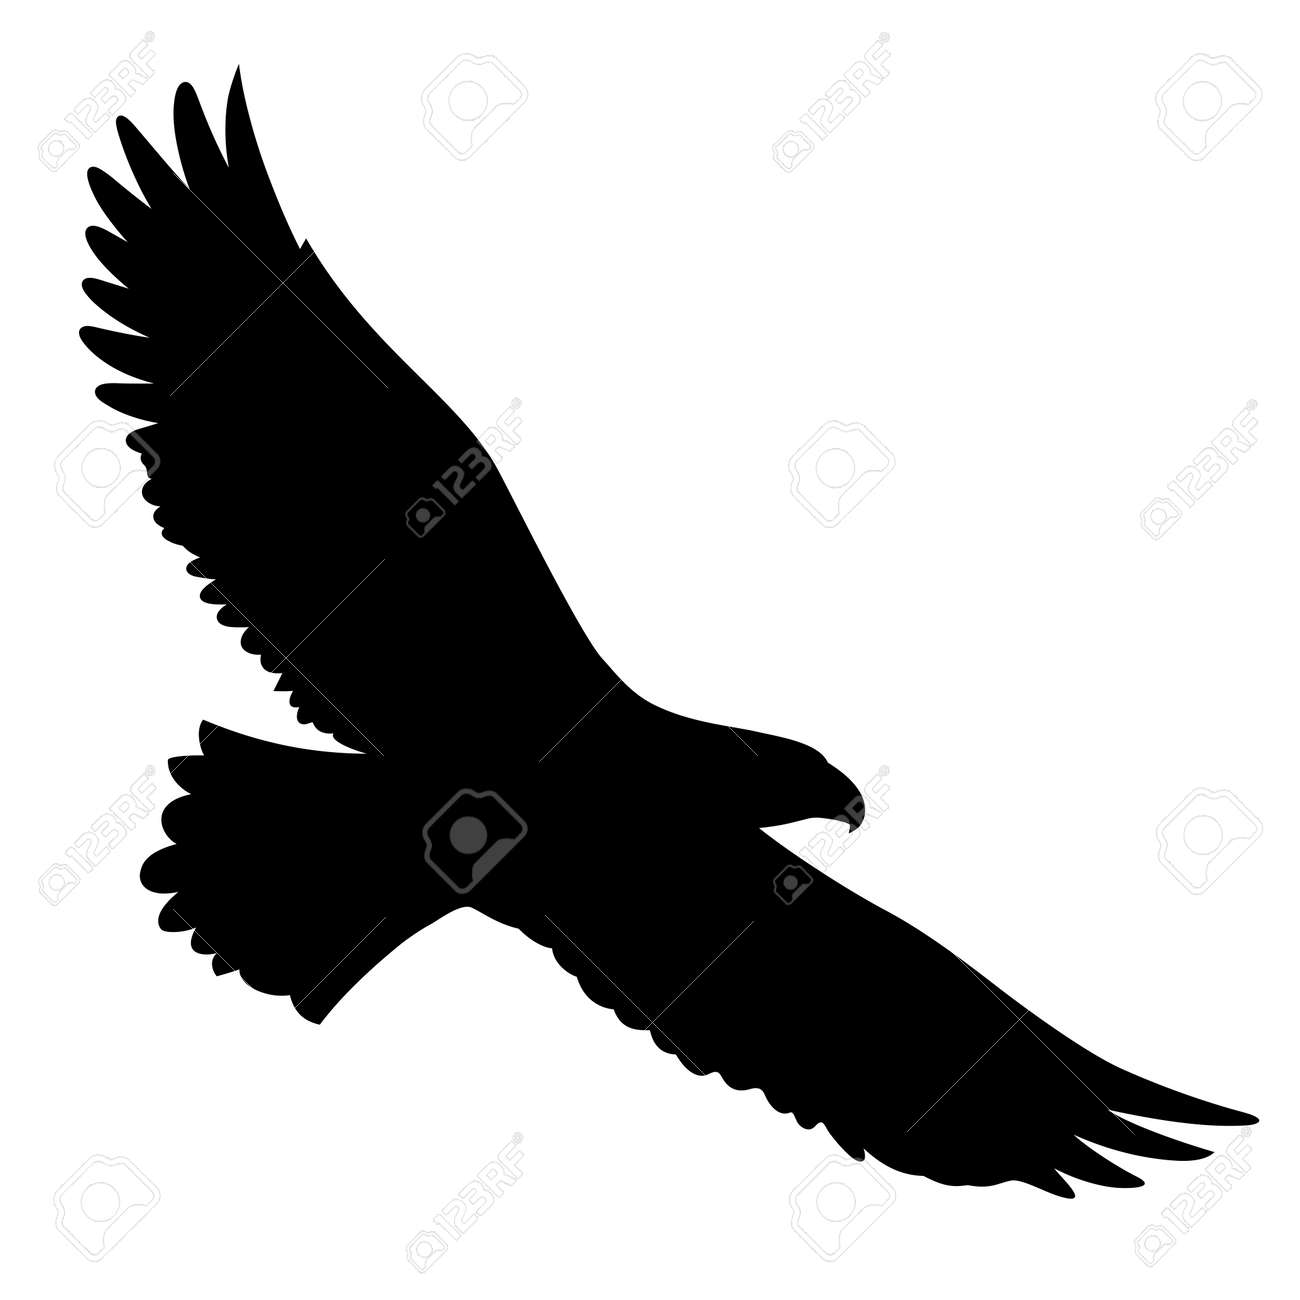 Bald Eagle Silhouette Isolated On White This Vector Illustration Royalty Free Cliparts Vectors And Stock Illustration Image 110427387 Eagle flying eagle silhouette silhouette flying eagle flying silhouette symbol bird animal icon decoration emblem outline background decorative element wing fly falcon backdrop template wildlife. 123rf com